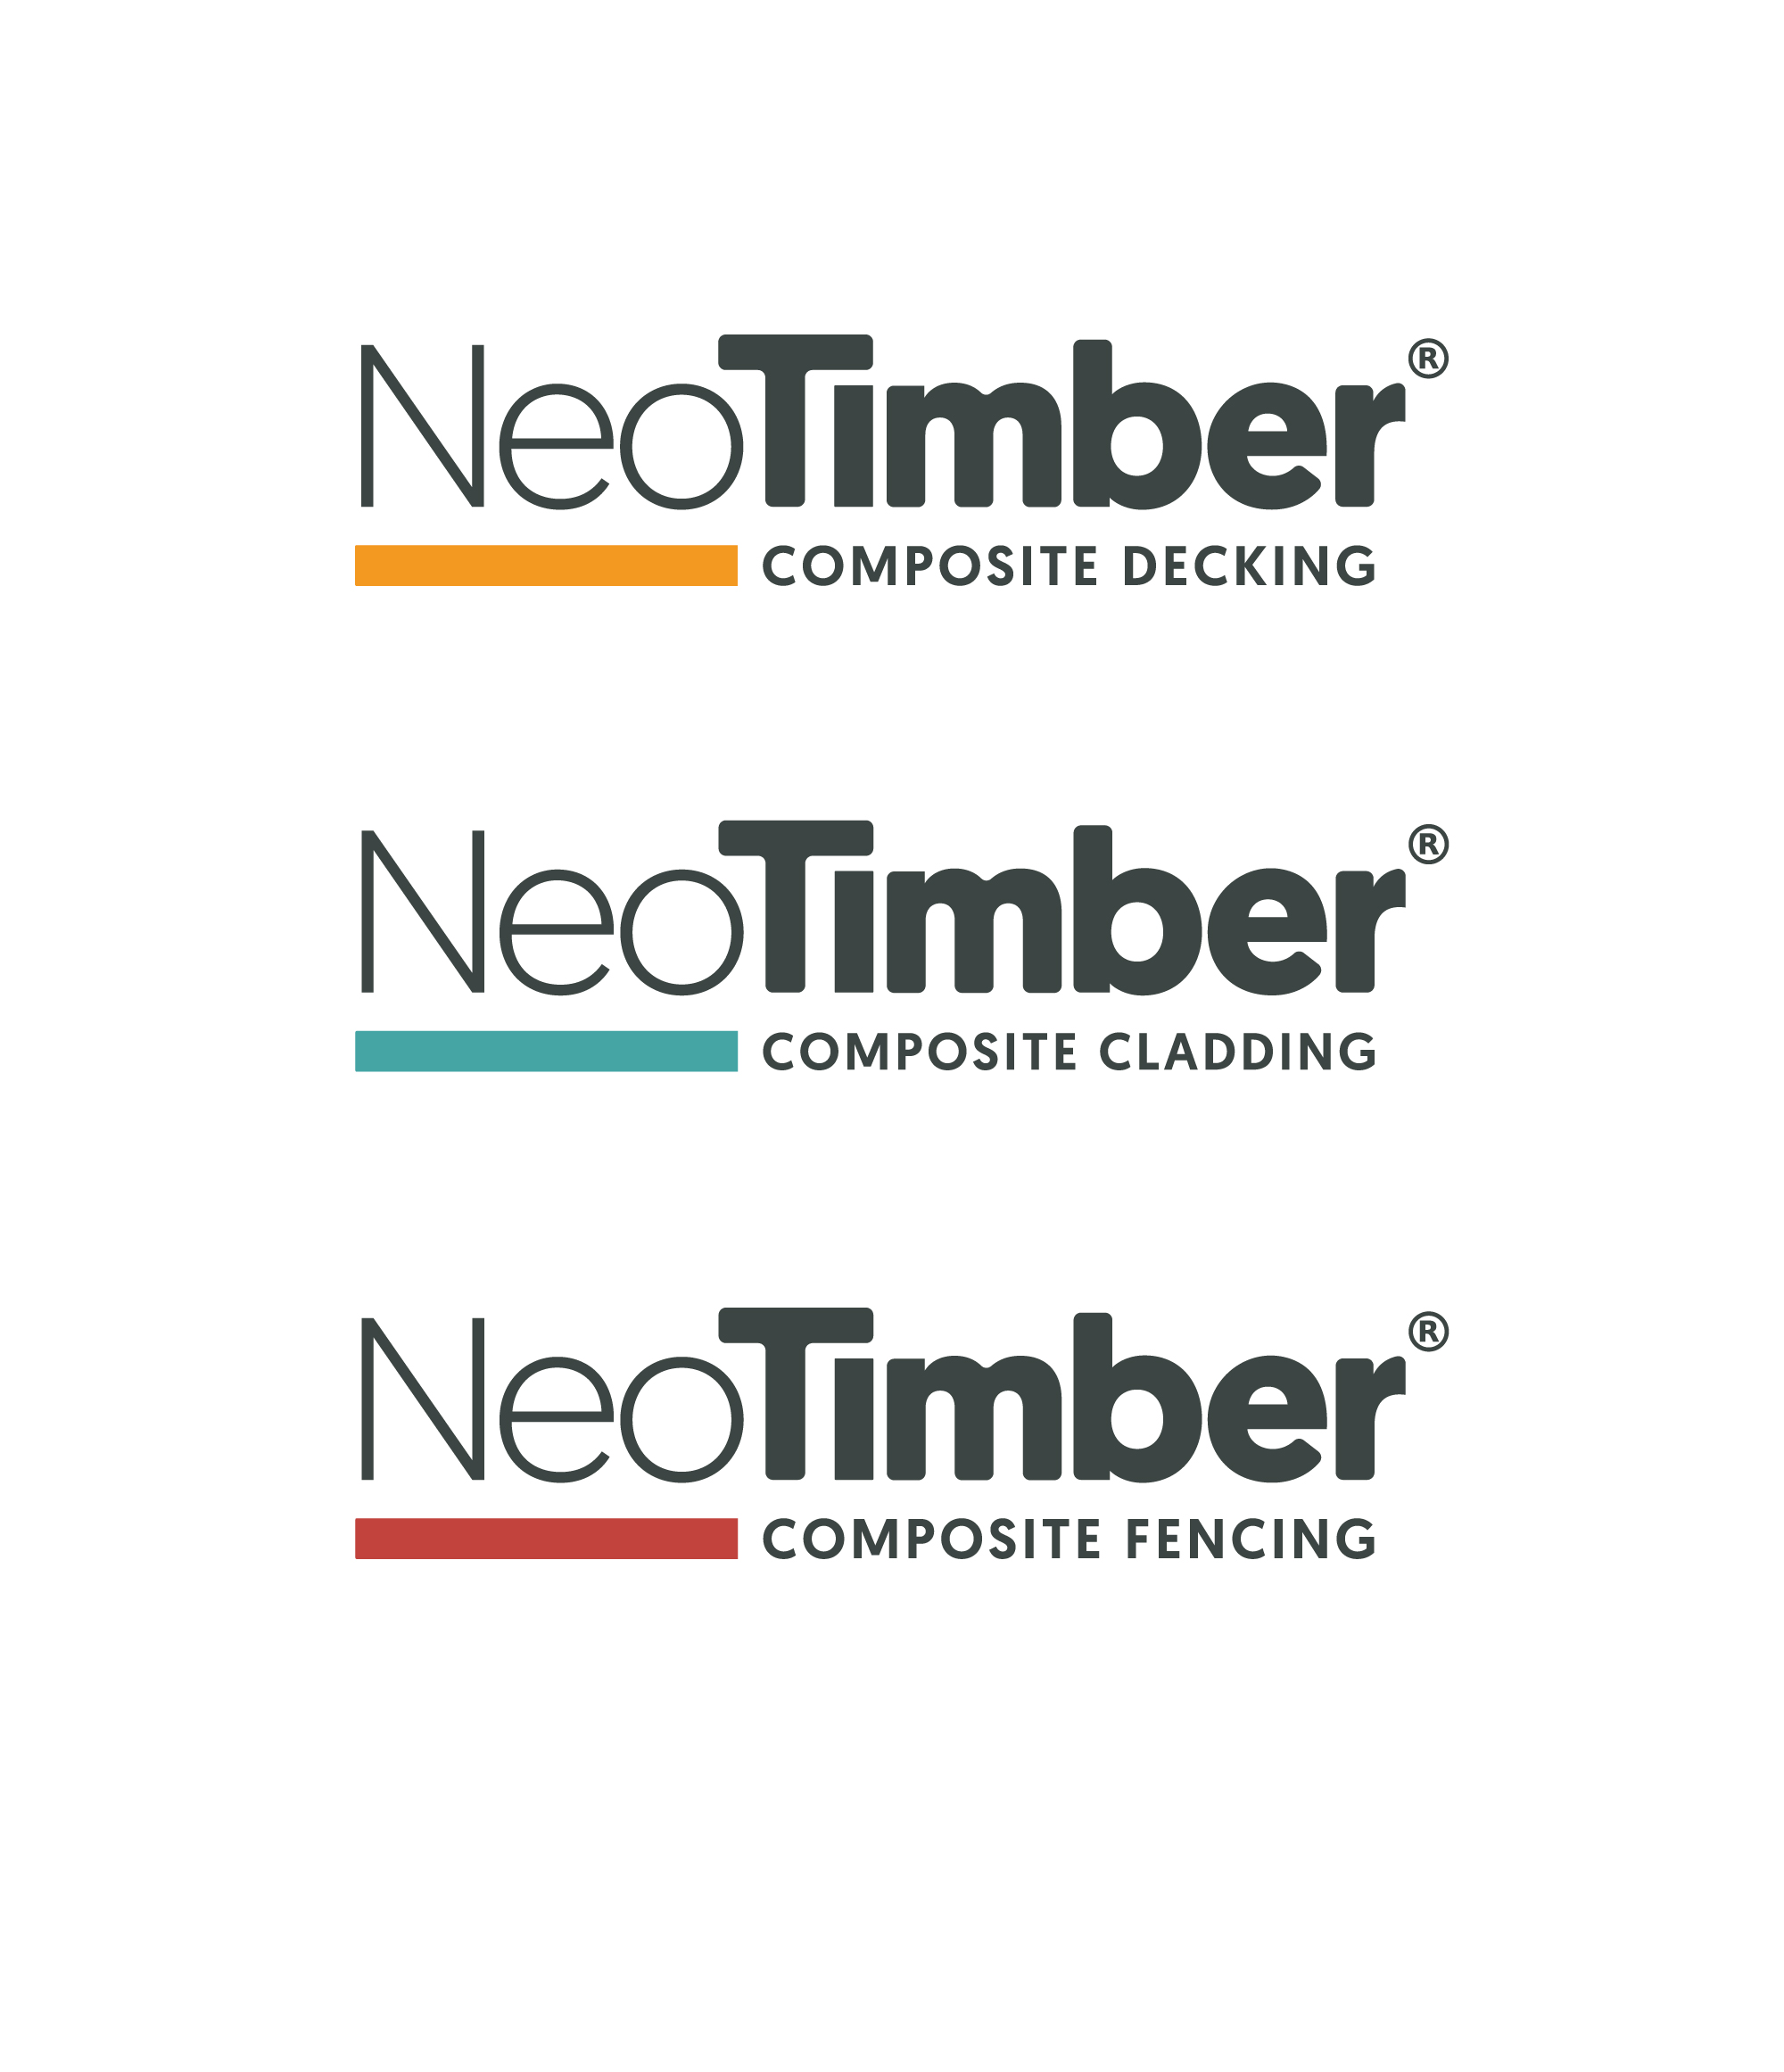 NeoTimber sub brands for decking, cladding and fencing